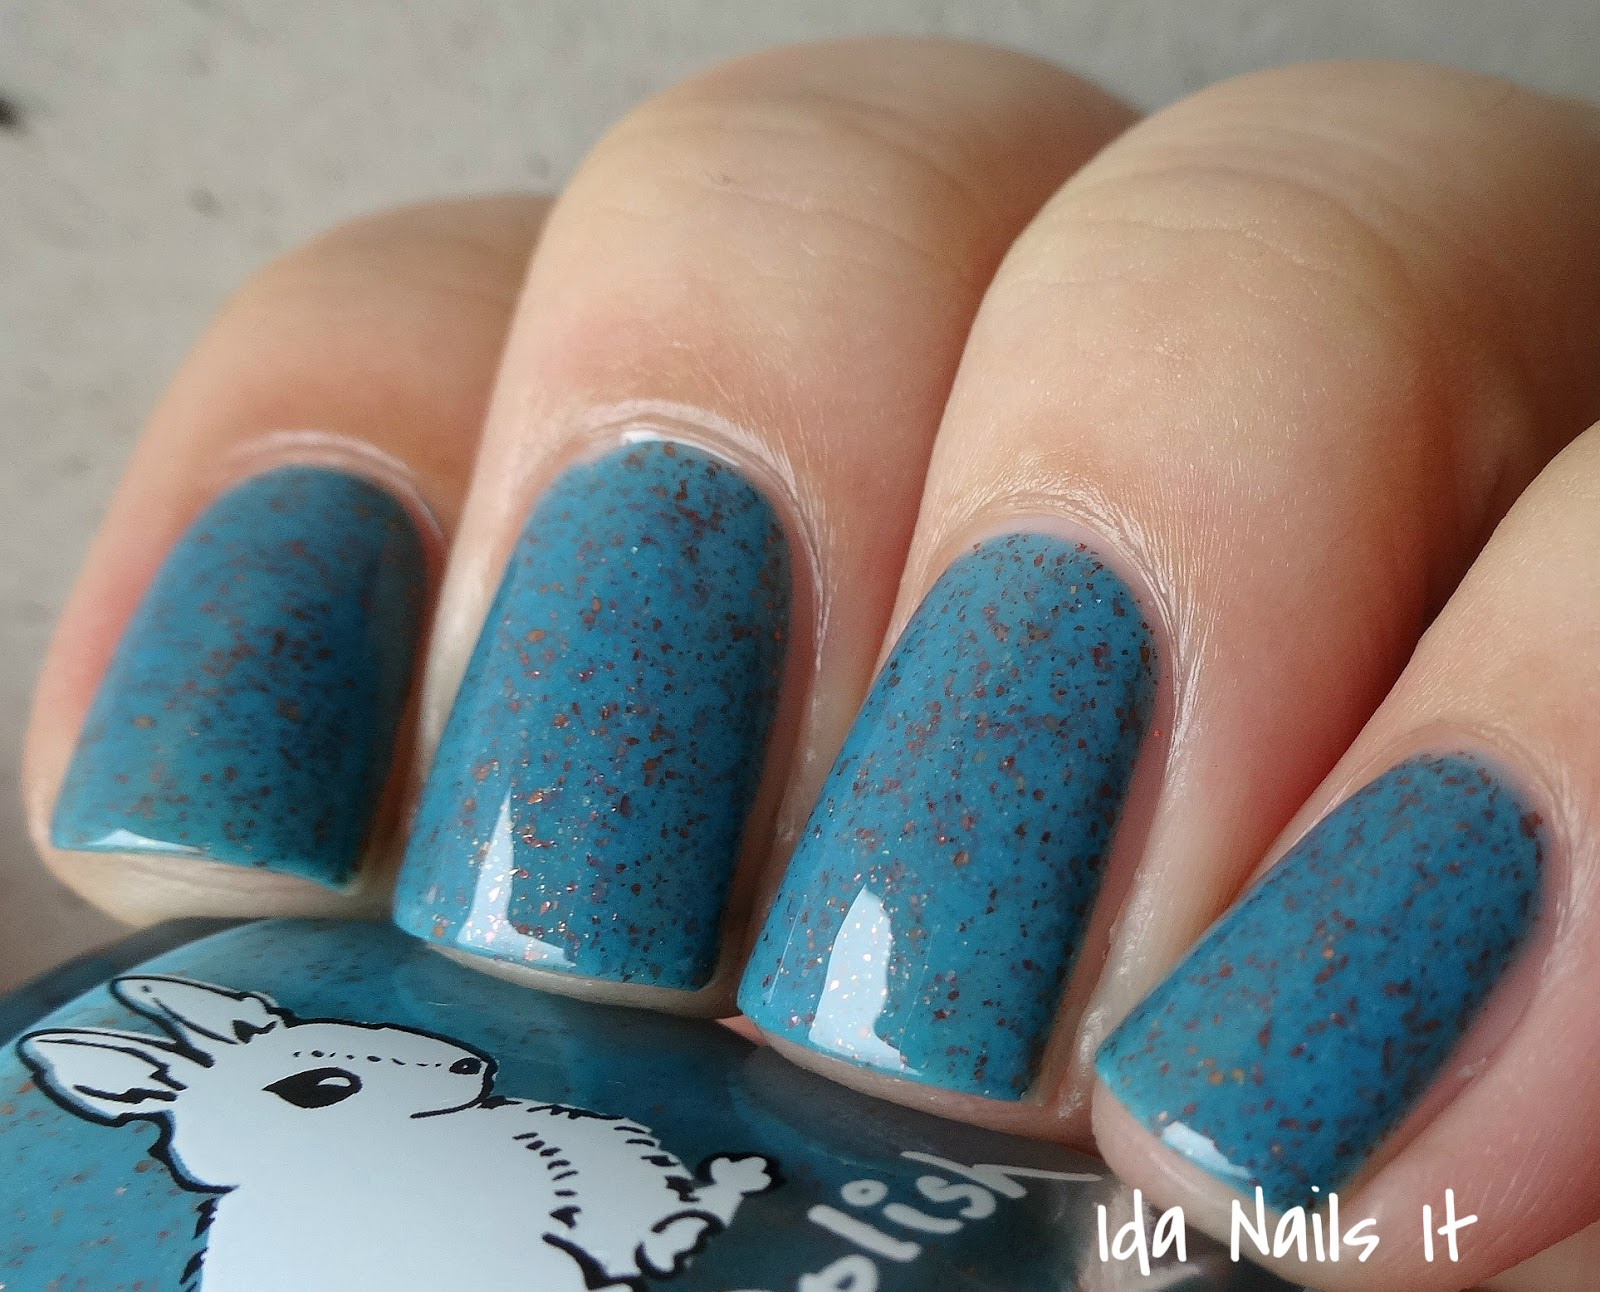 Ida Nails It: Hare Polish Winter 2014: Welcome to Twin Peaks, Part 2 ...